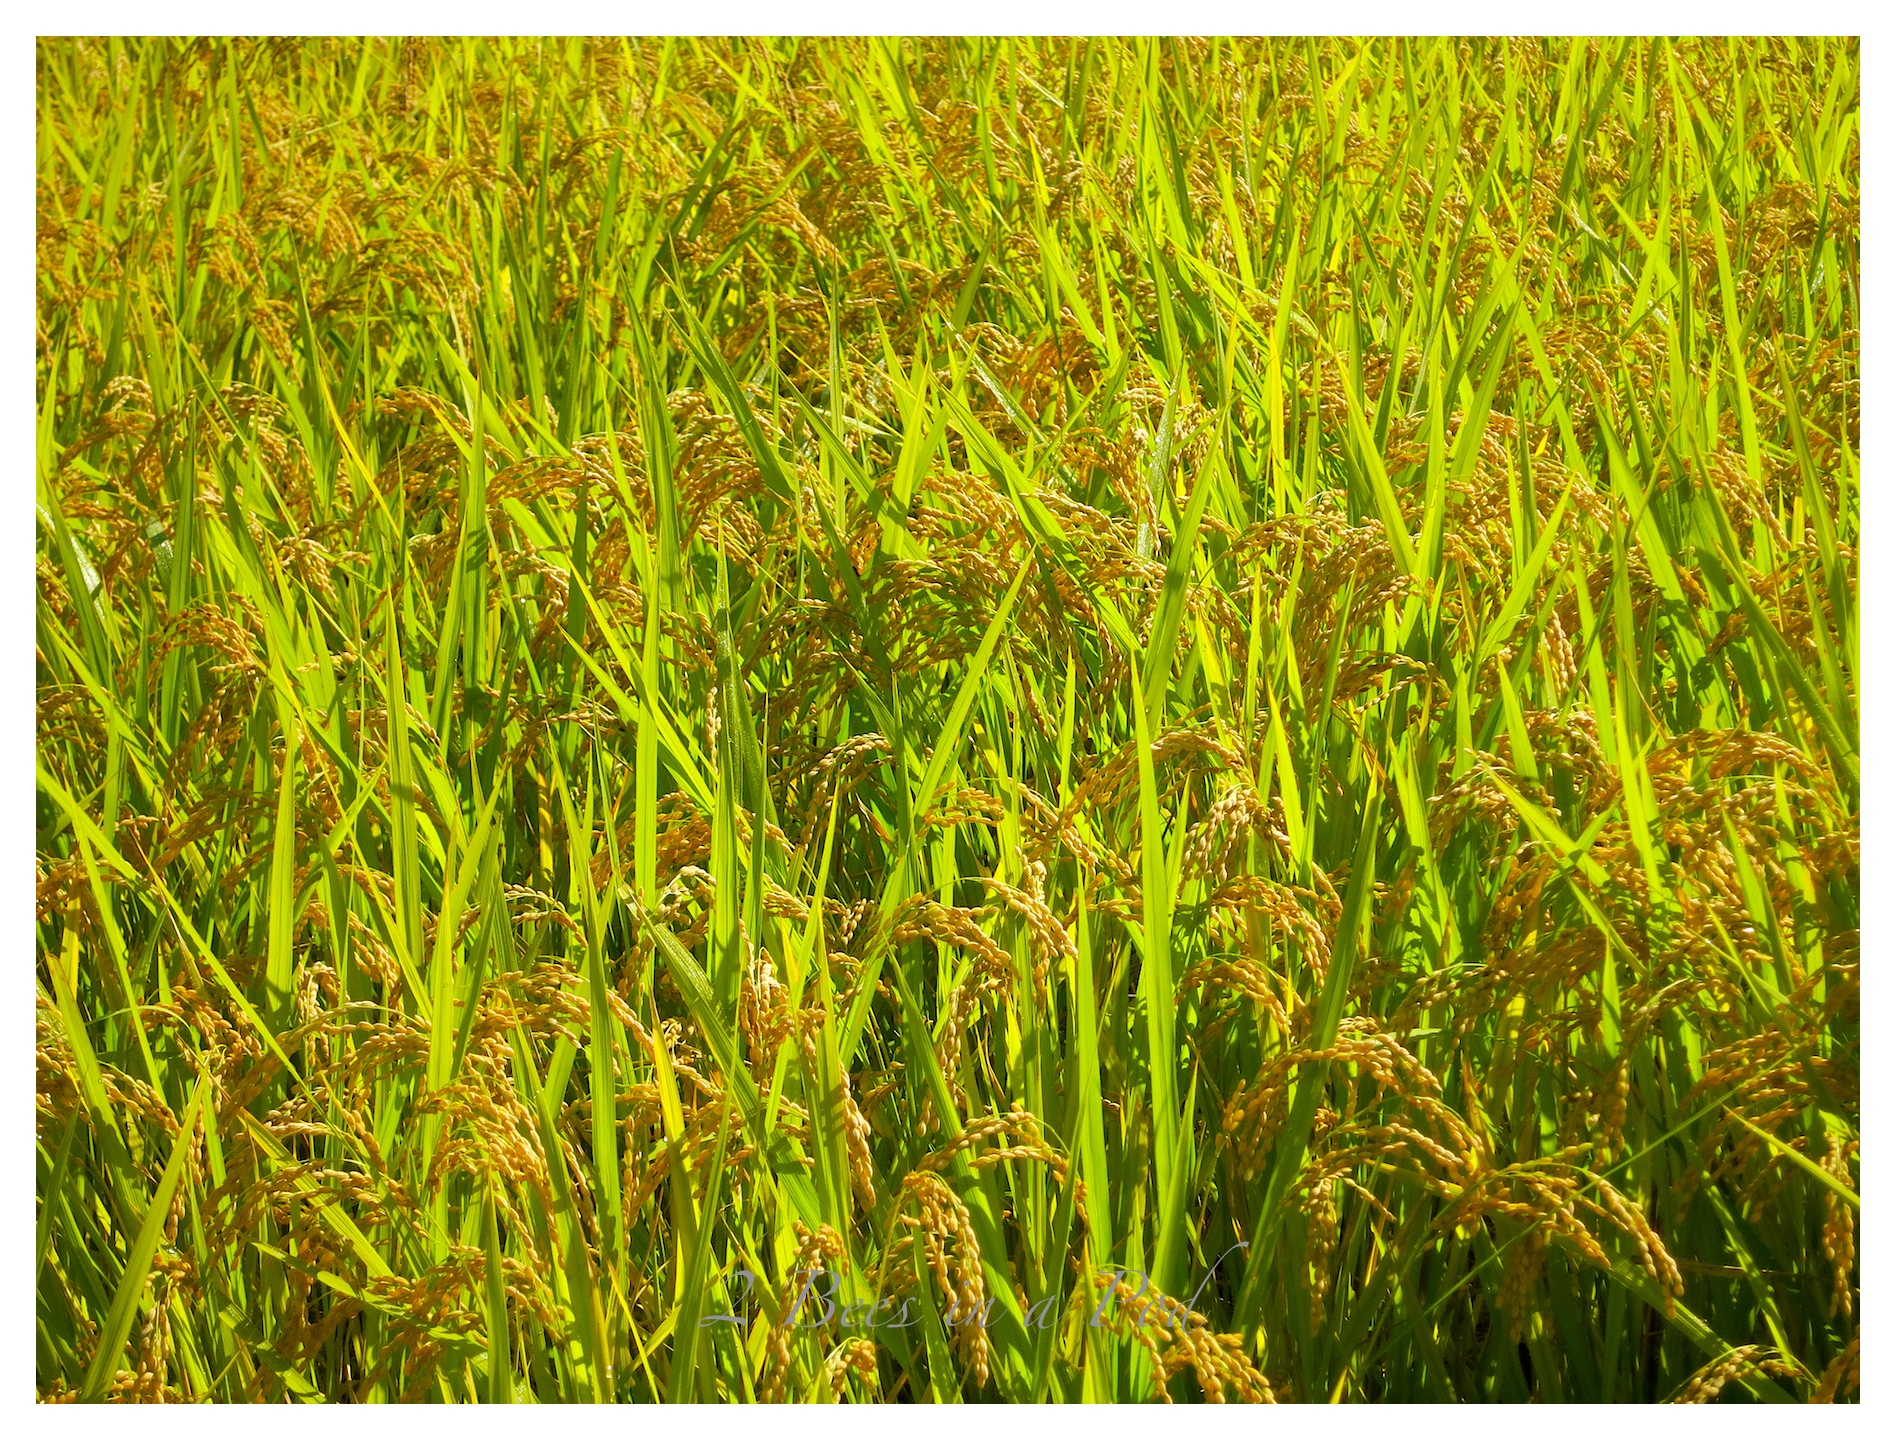 My first time ever seen real rice growing in a rice paddy in the South Korean countryside